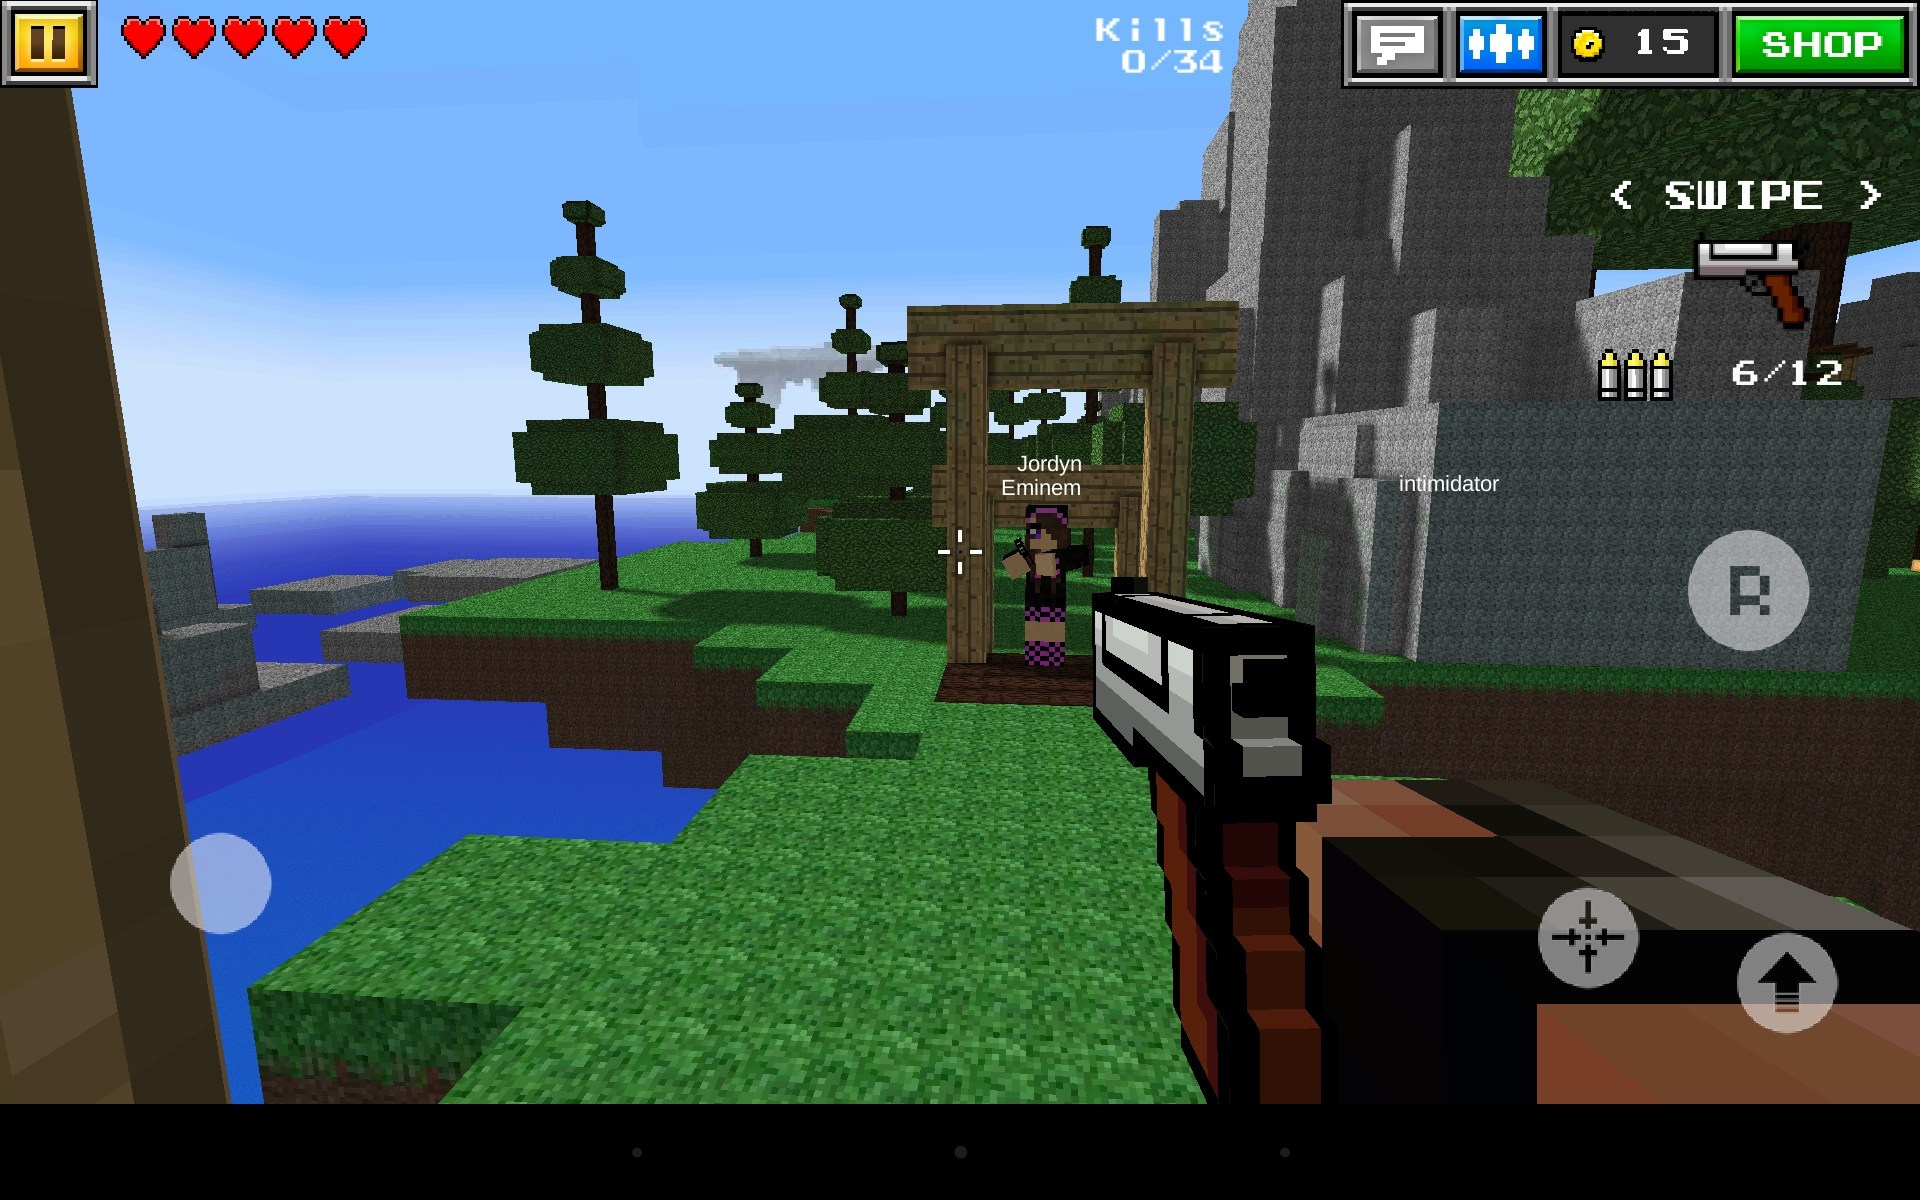 pixel gun 3d dating app no Download pixel gun 3d (minecraft style) 1512 minecraft-style multiplayer shooter important: it's necessary to install this game from the official uptodown app.